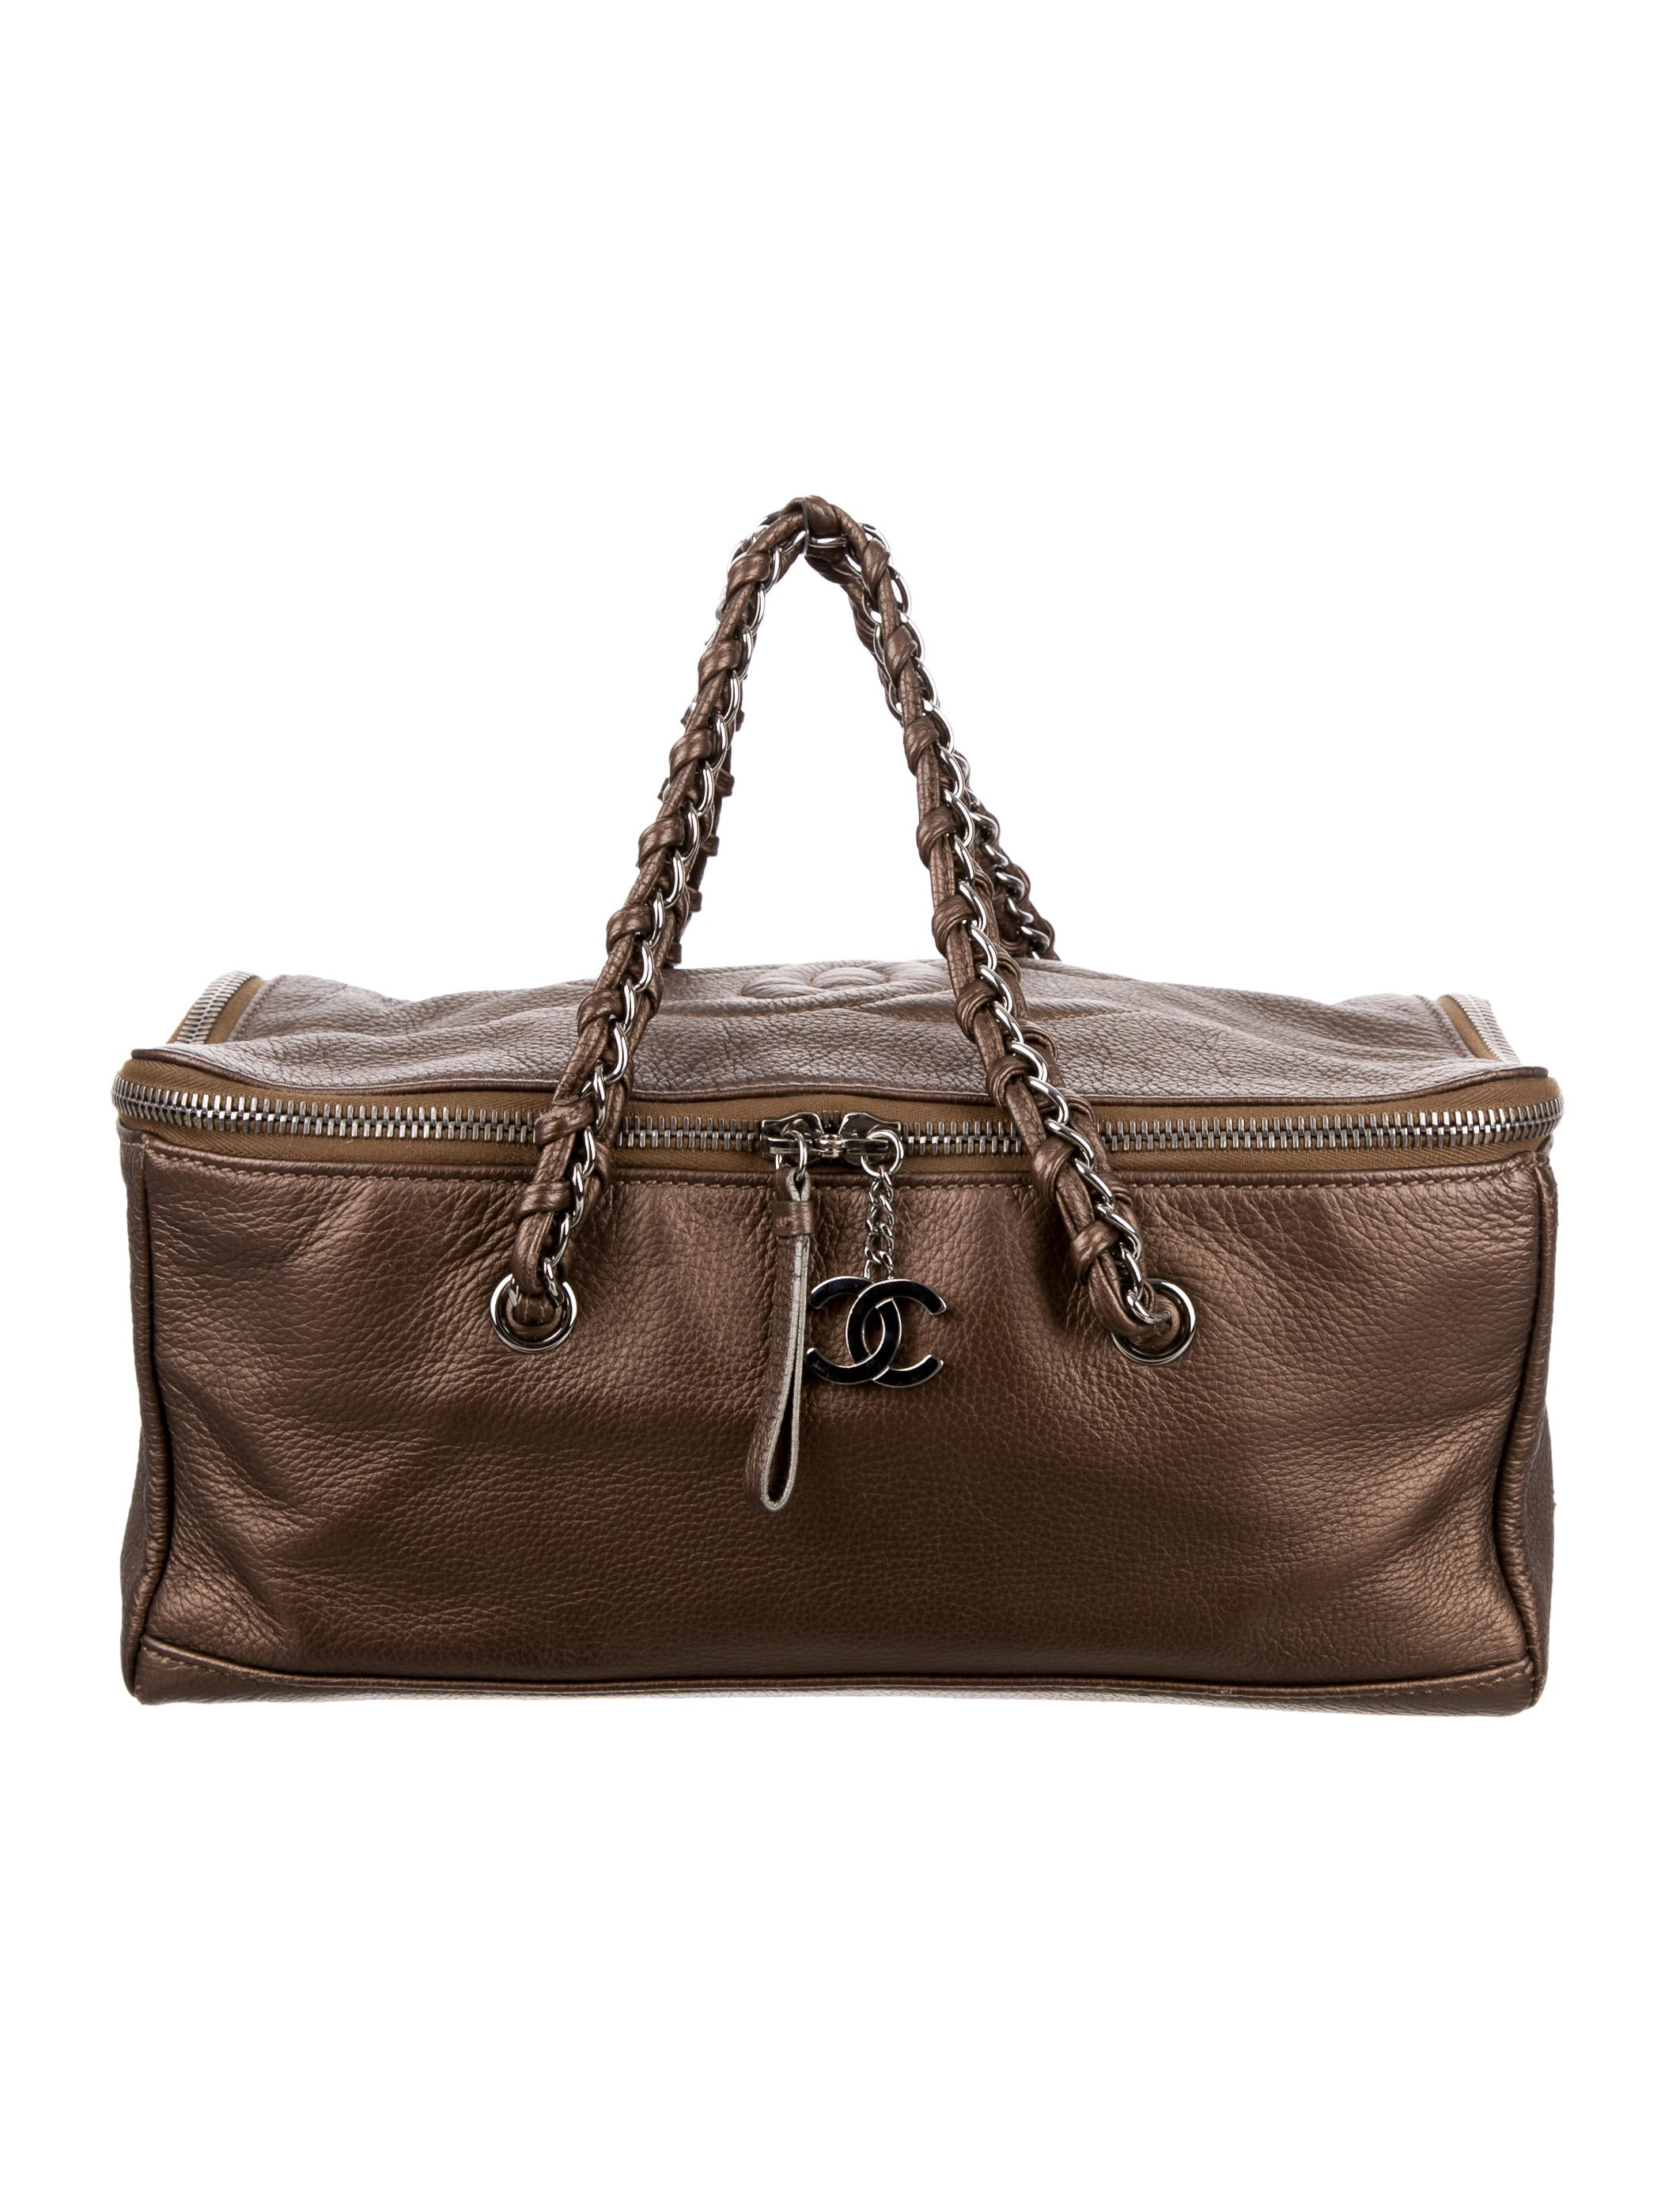 Shop for Annabel Ingall Isabella Large Leather Tote with FREE Shipping & FREE Returns. Pick Up in Store Available.